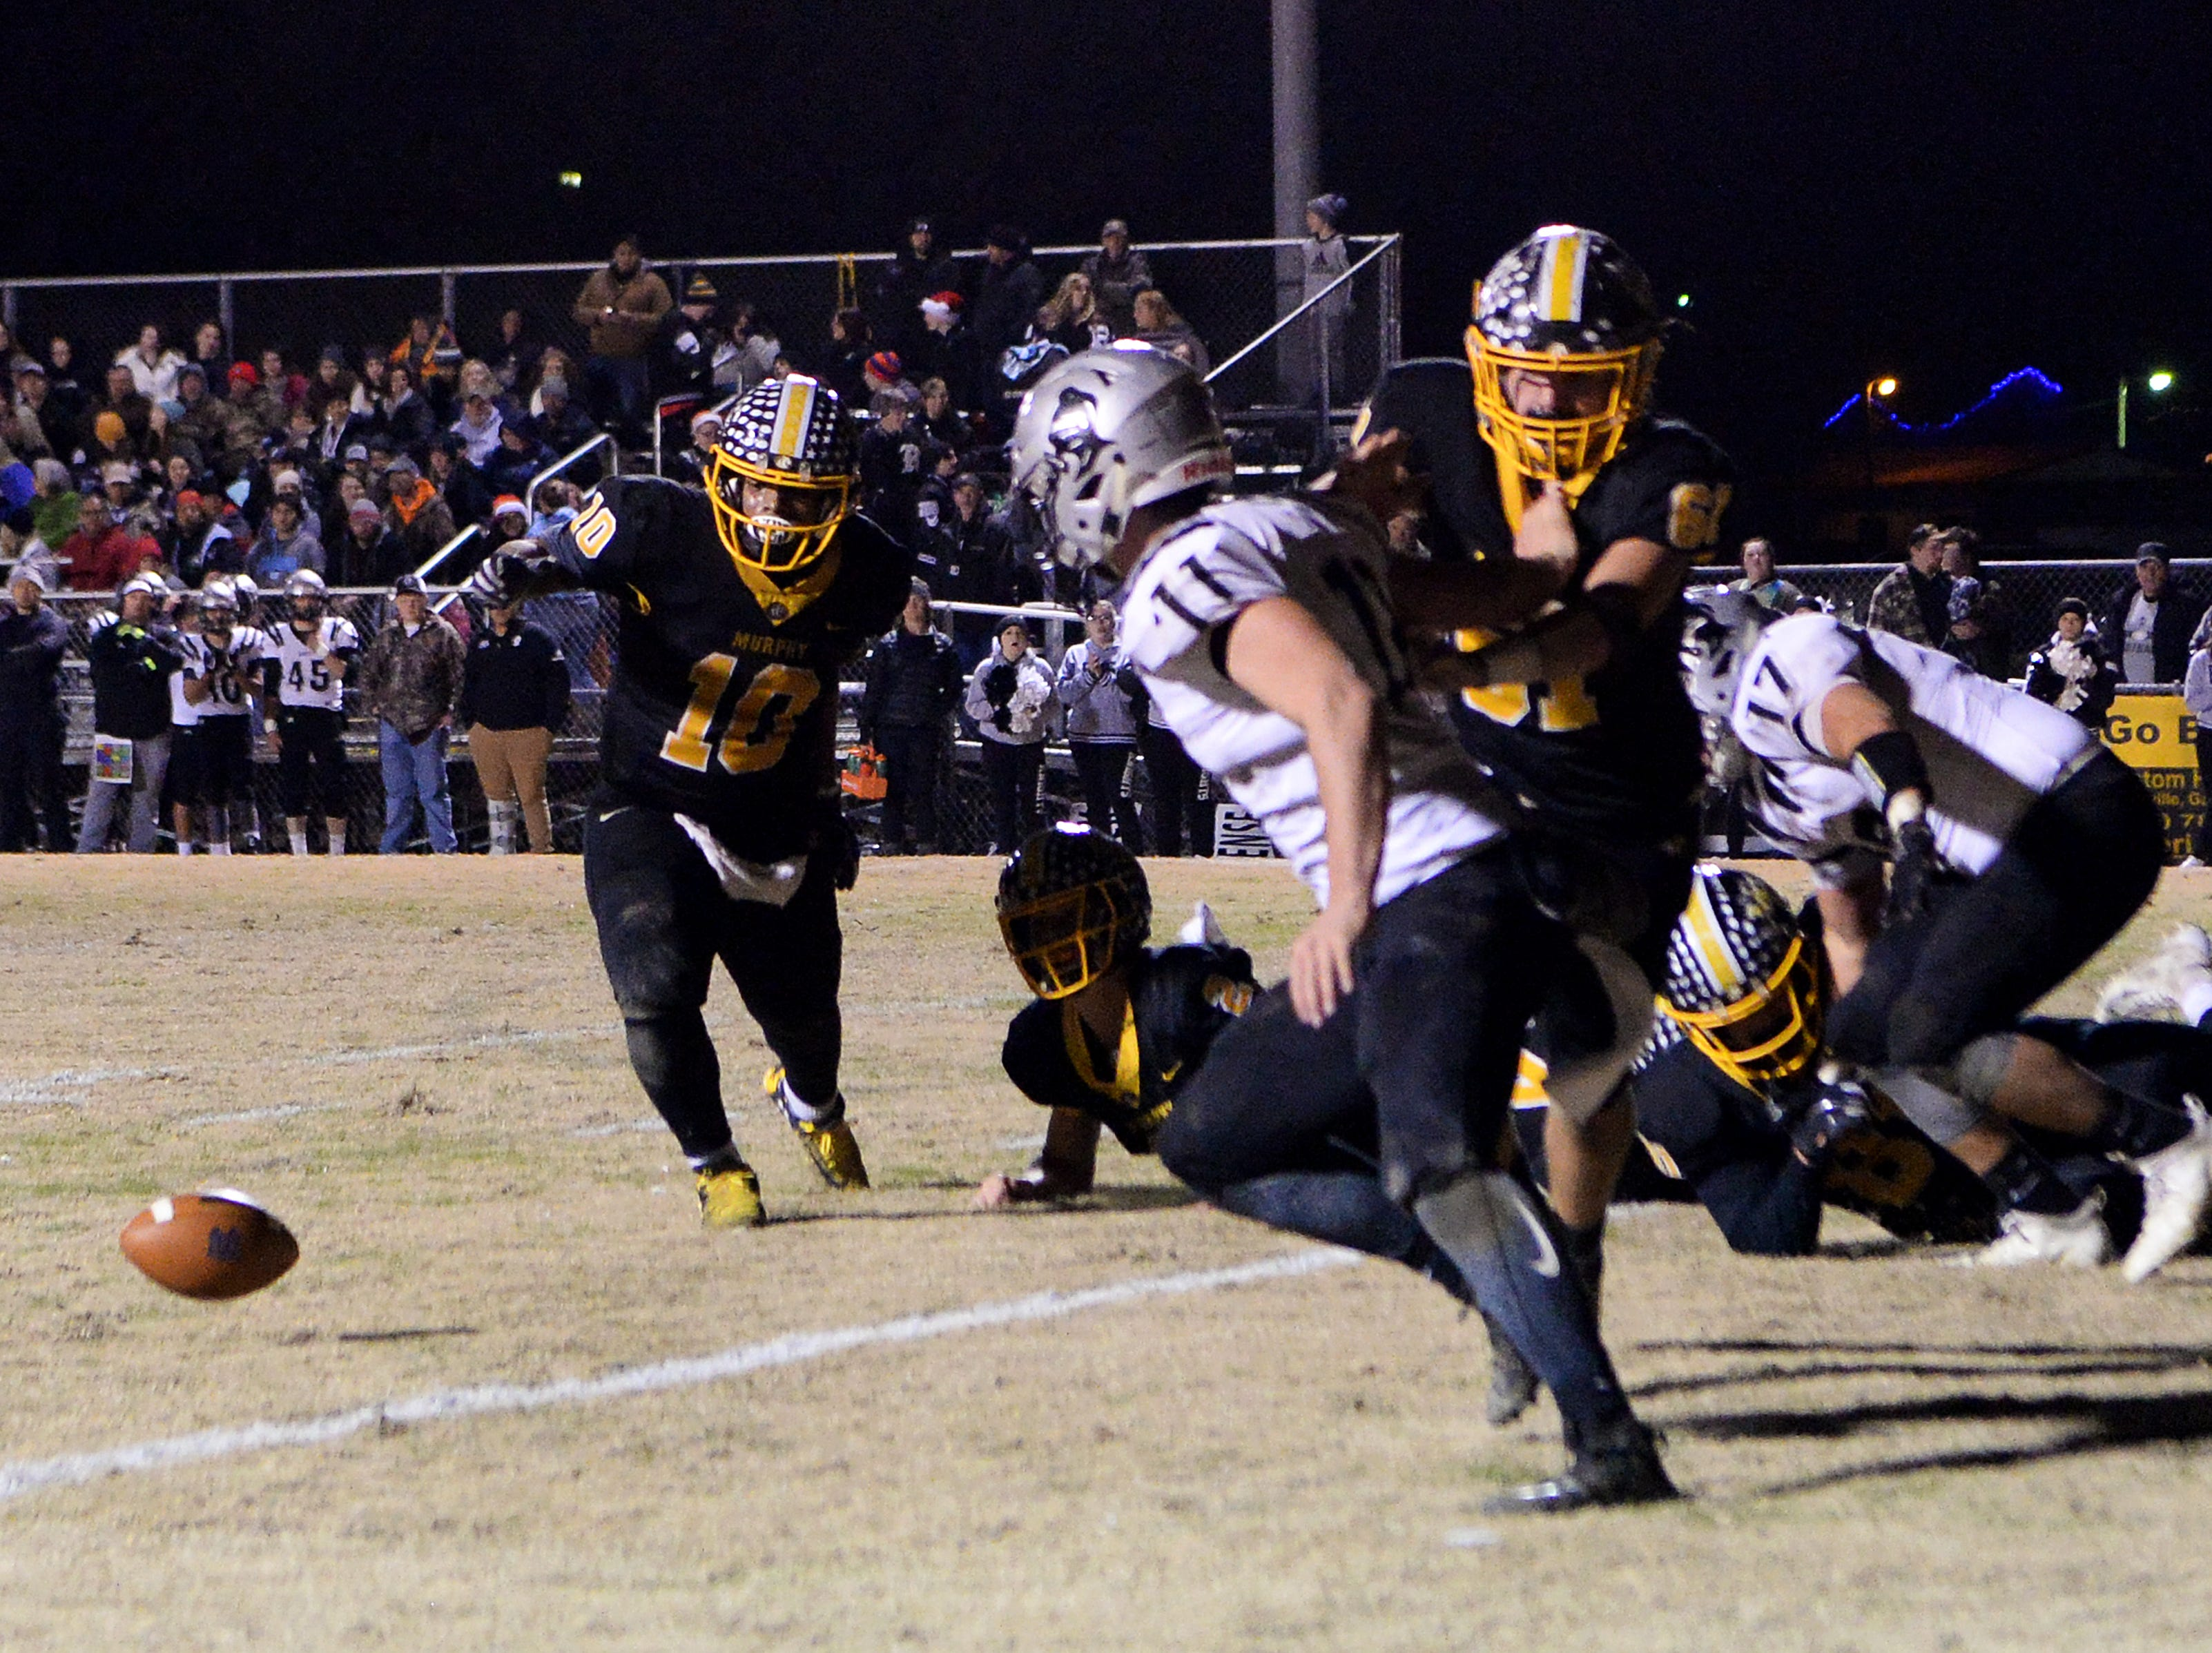 Murphy hosted Robbinsville in the NCHSAA 1A West regional final at Murphy High School on Dec. 7, 2018. The Bulldogs defeated the Black Knights 28-6 and will advance to the state championship game.